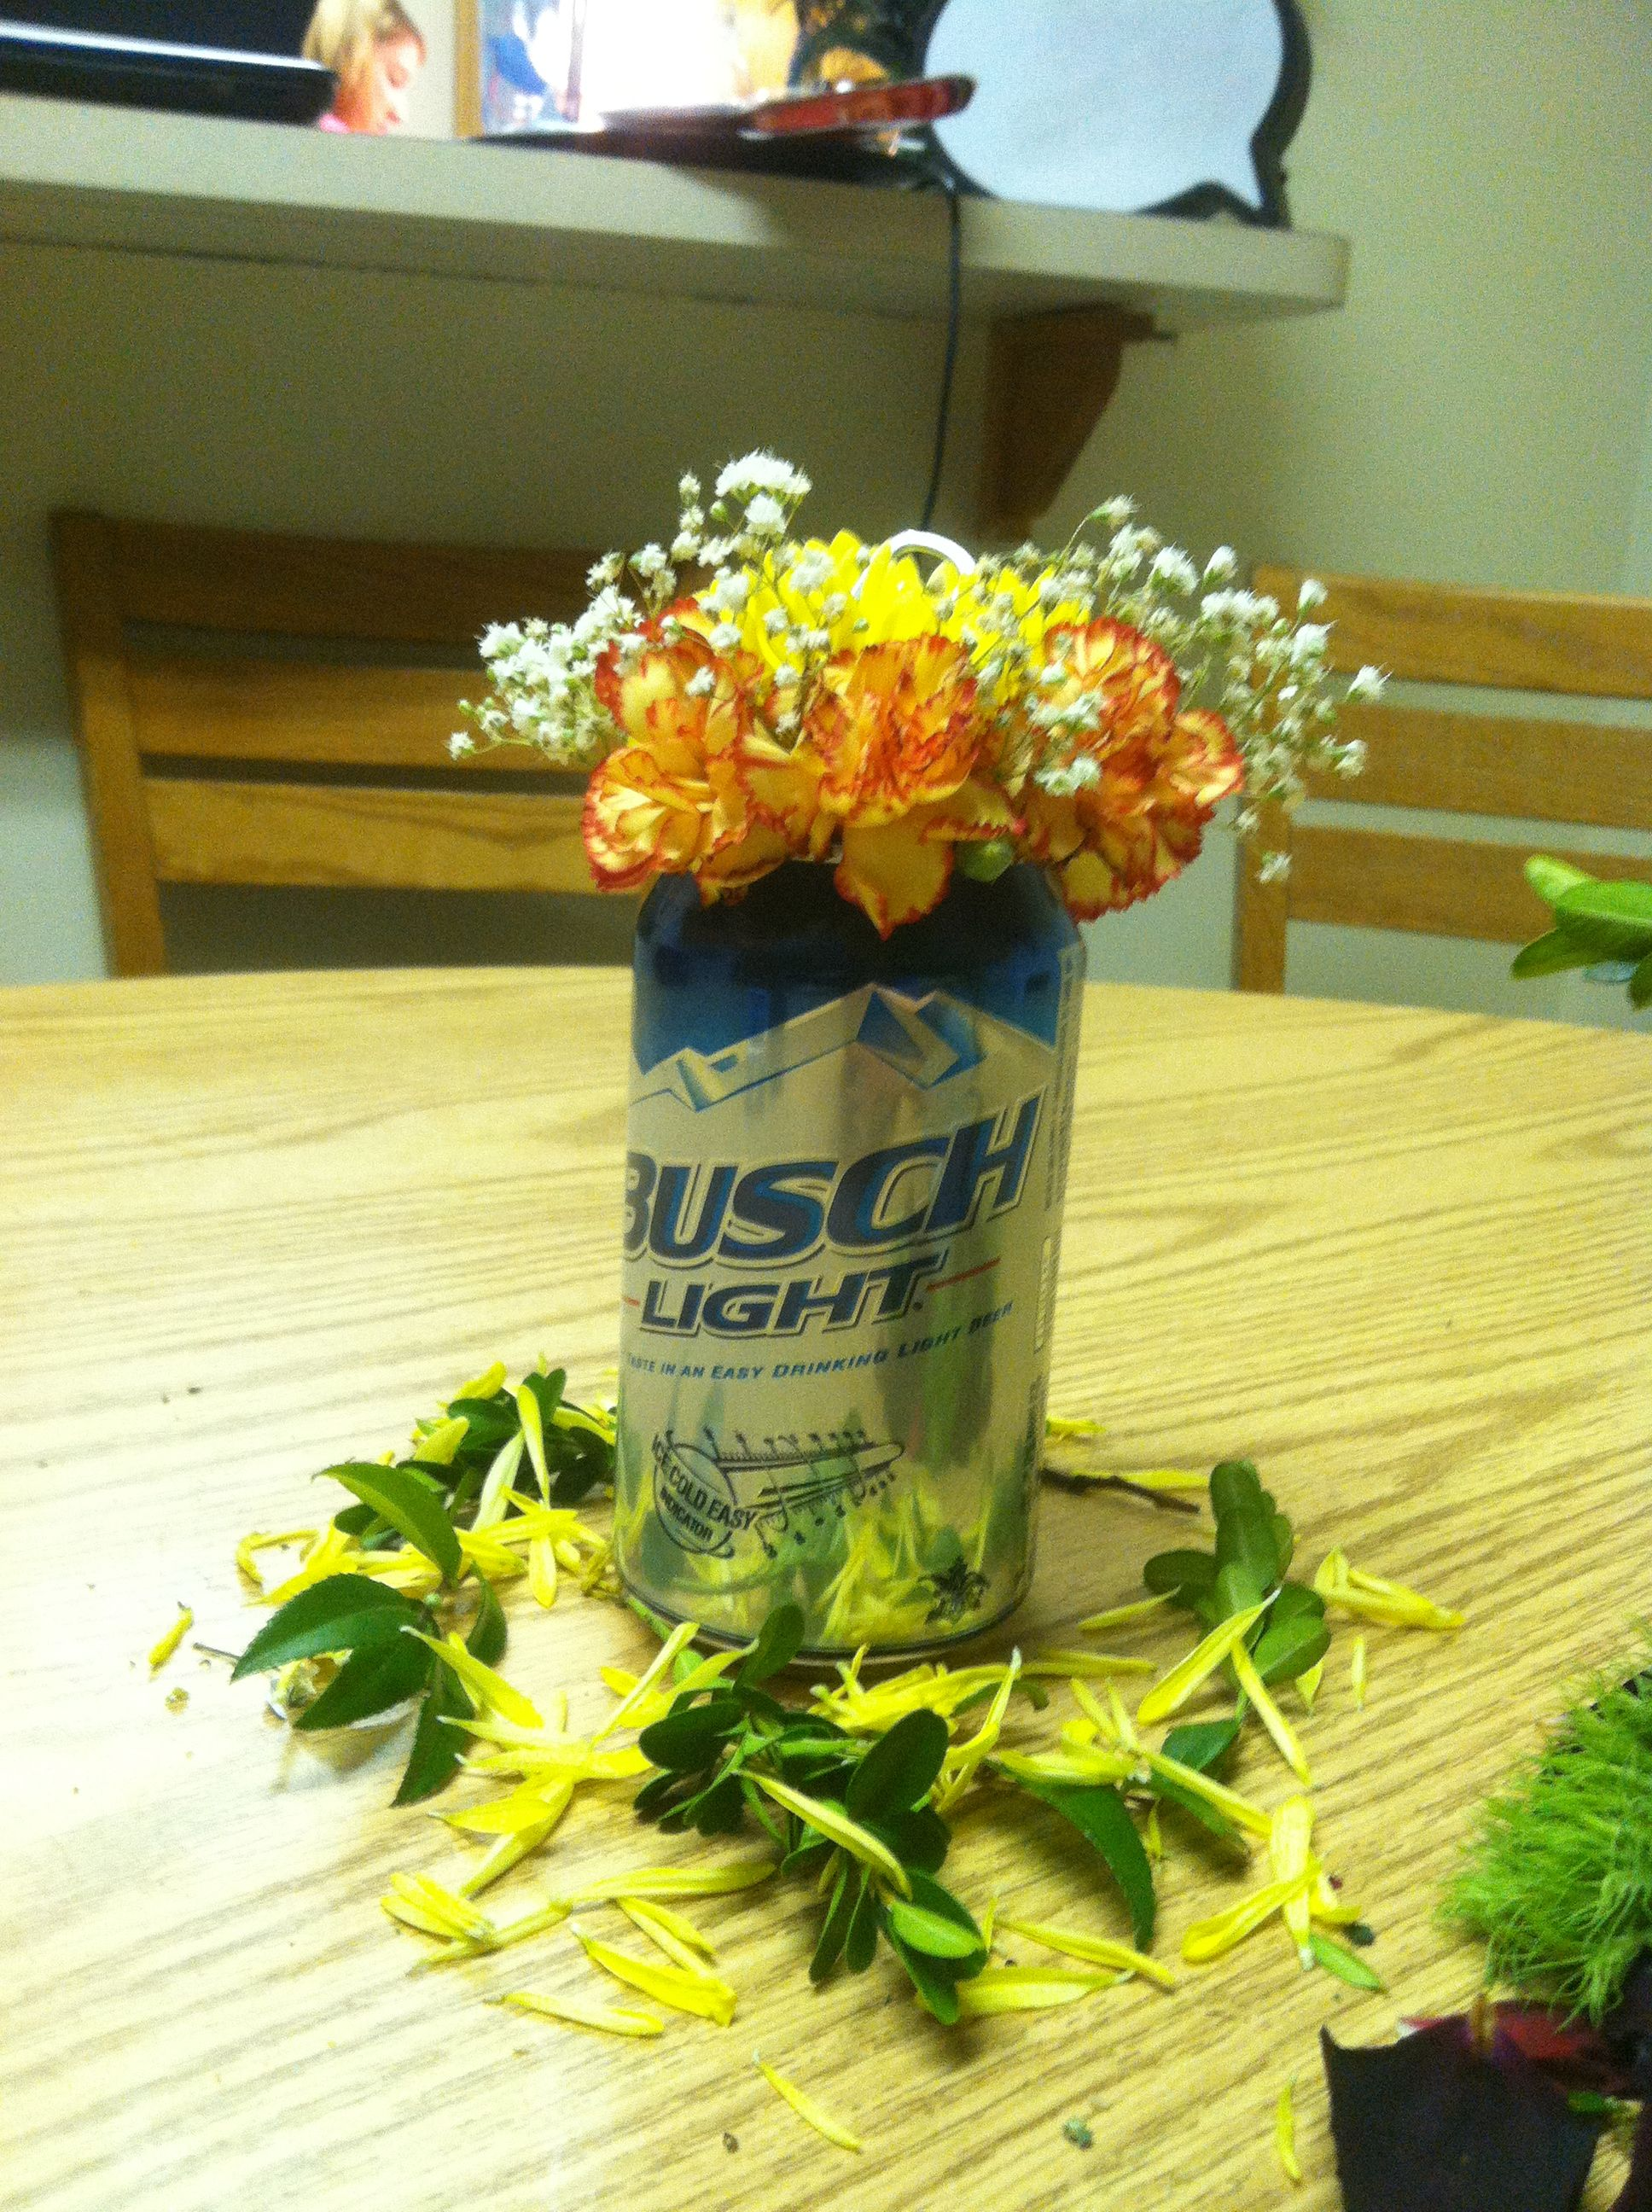 And for the Busch light lovers!